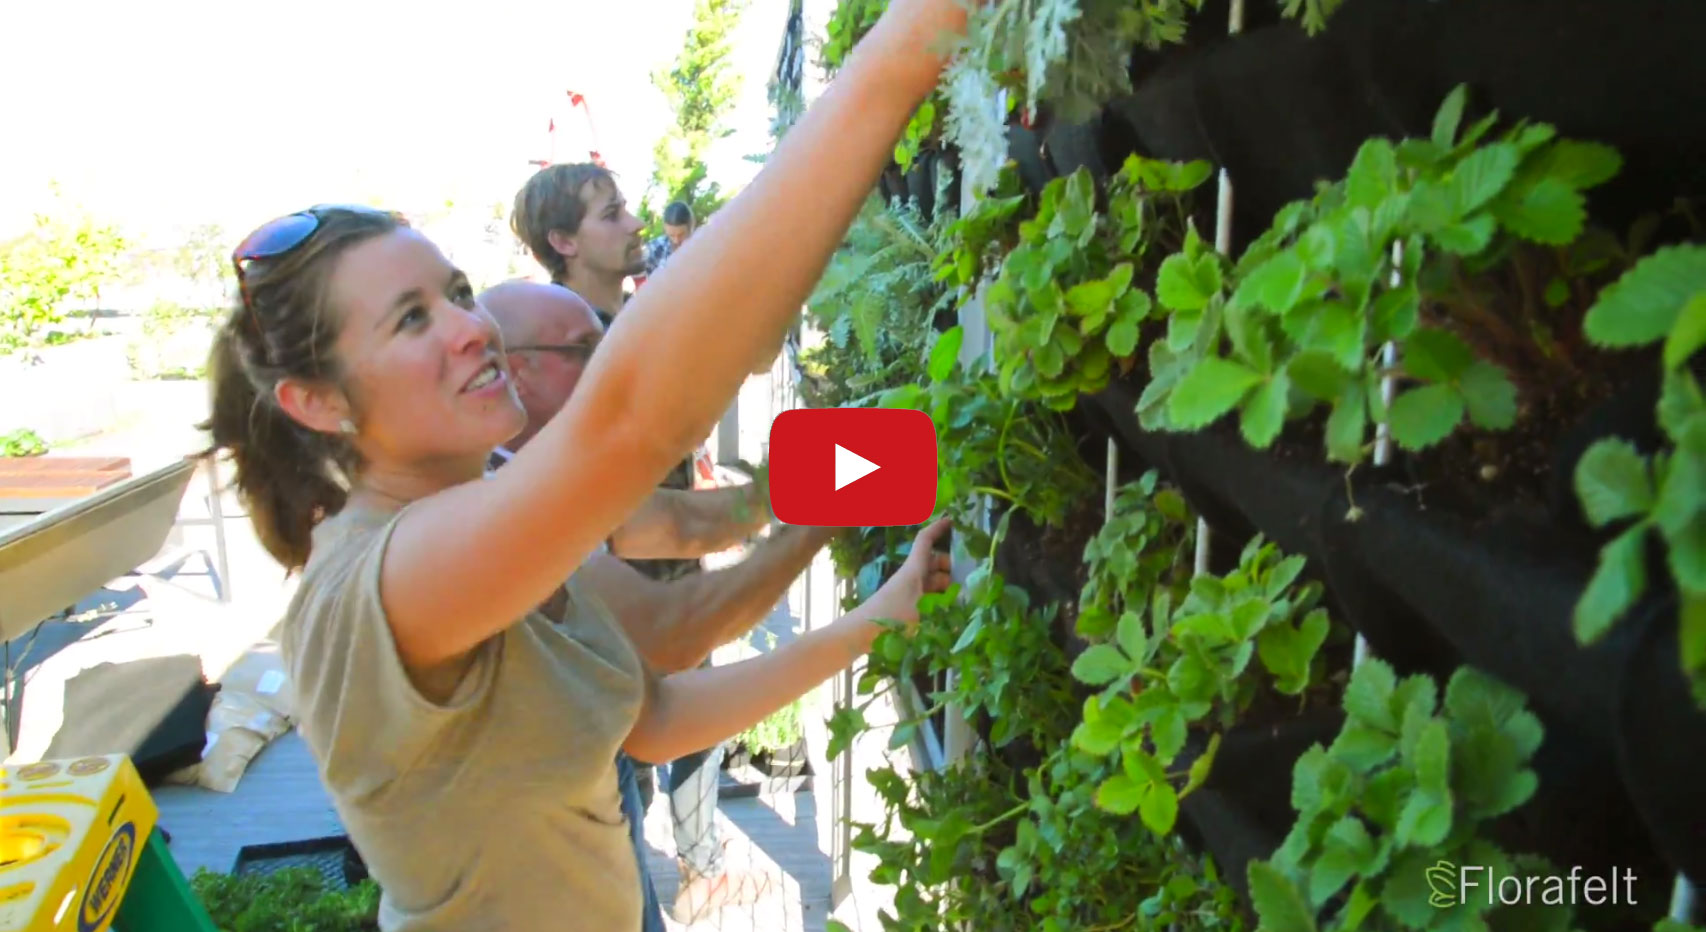 VIDEO: Vertical Herb Garden for Bartenders.  A mix of herbs served fresh for the perfect garnish for glass. Brandon Pruett, Rachel Farinelli and Lindsey Graves from Living Green Design created a custom vertical plant wall for Anchor Brewing Company's cocktail tasting rooftop lounge.